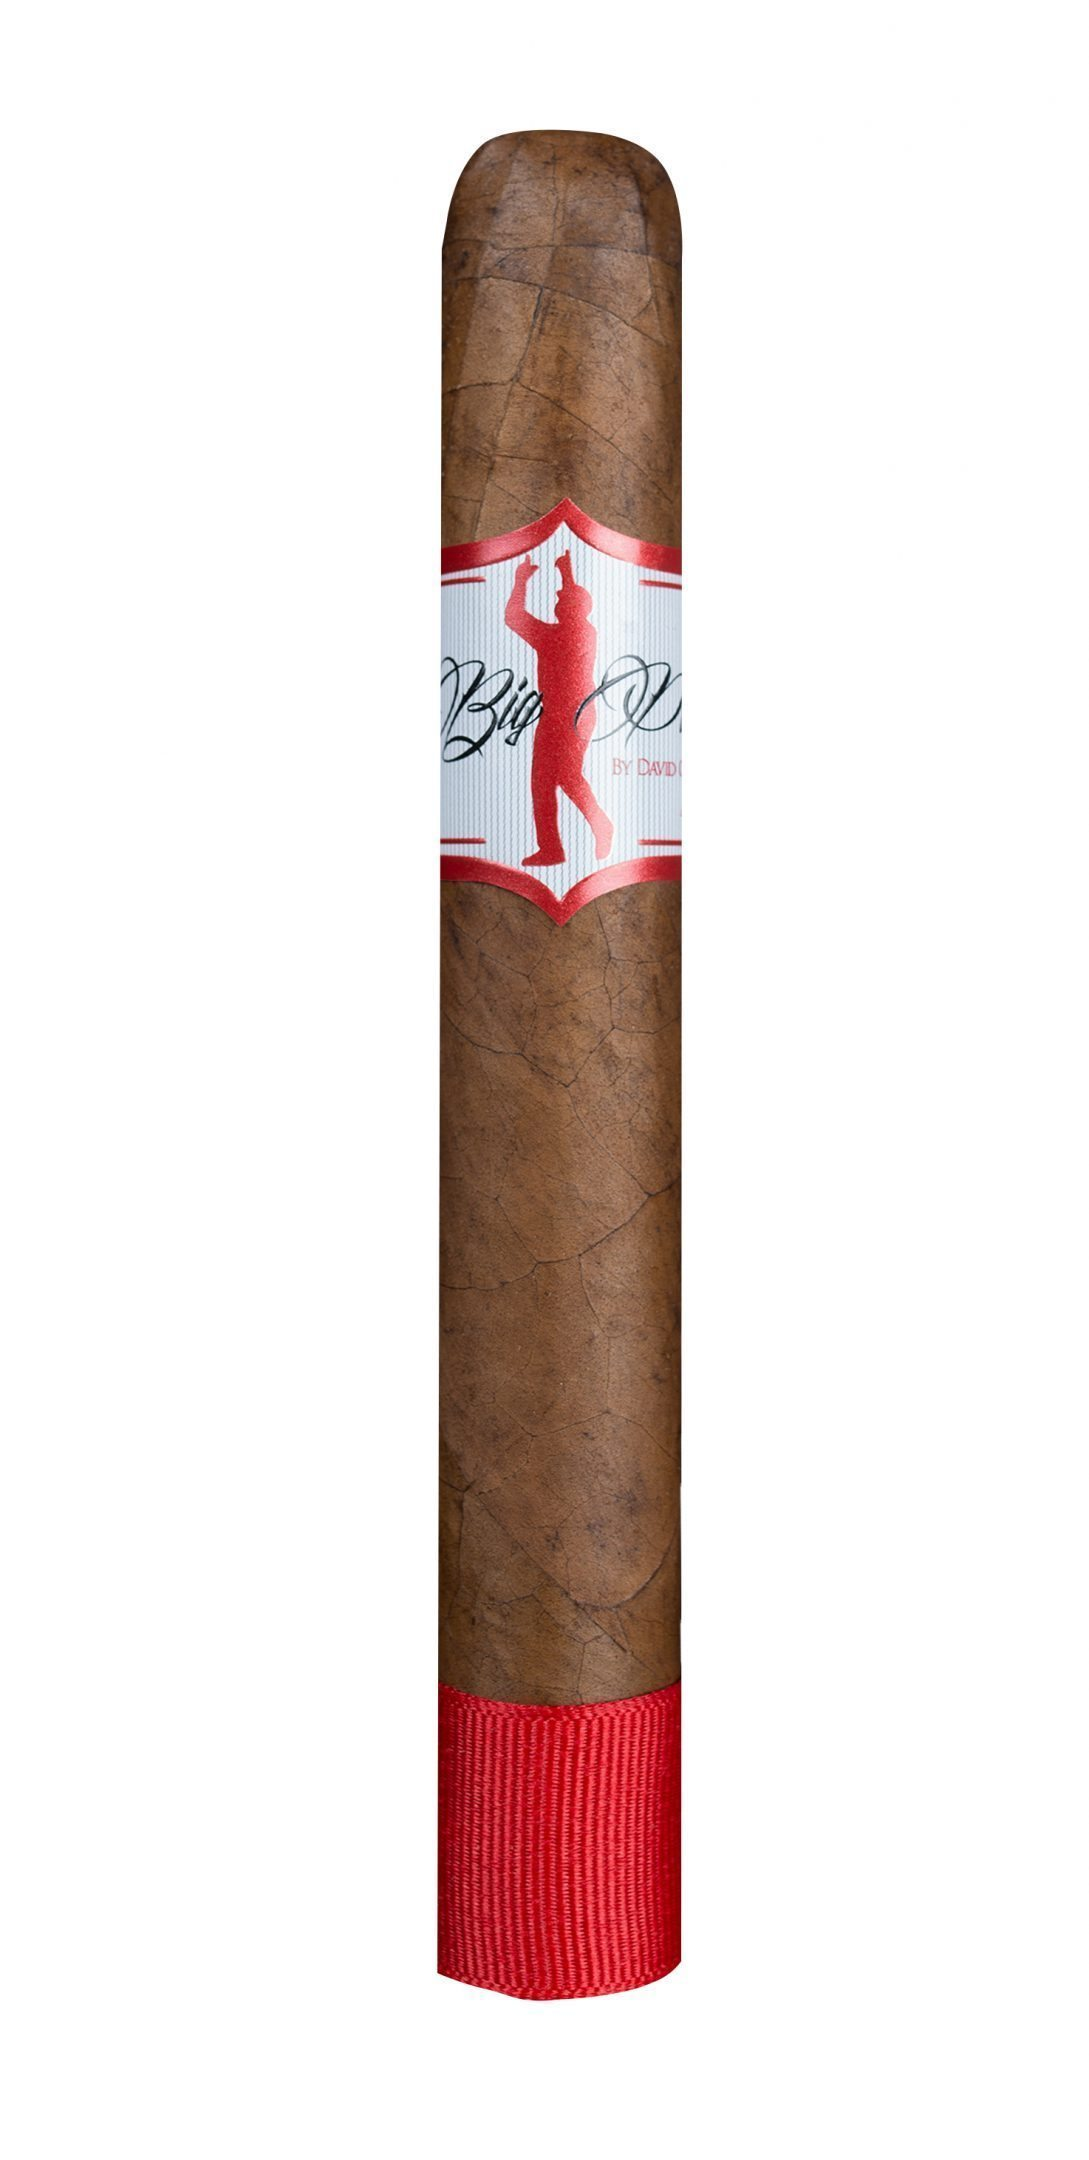 Cigar News: El Artista Cigars Shipping Big Papi and David Ortiz Appearances